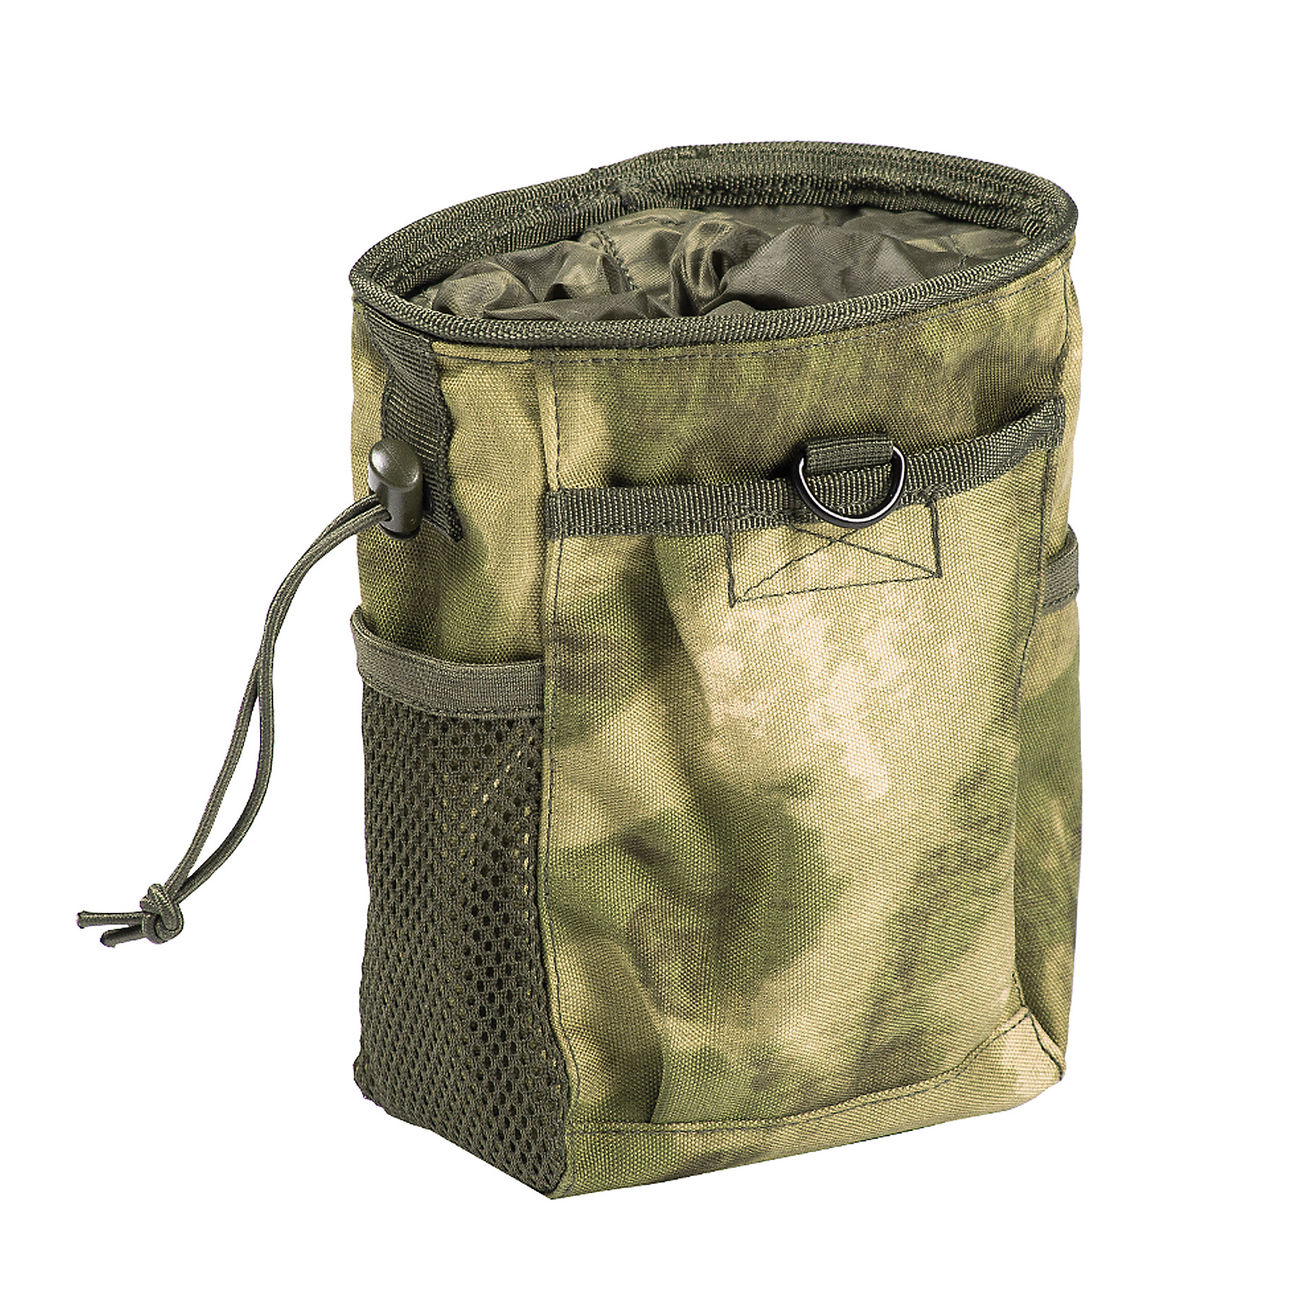 Mil-Tec Allzwecktasche Empty Shell Pouch Molle Mil-Tacs FG 0